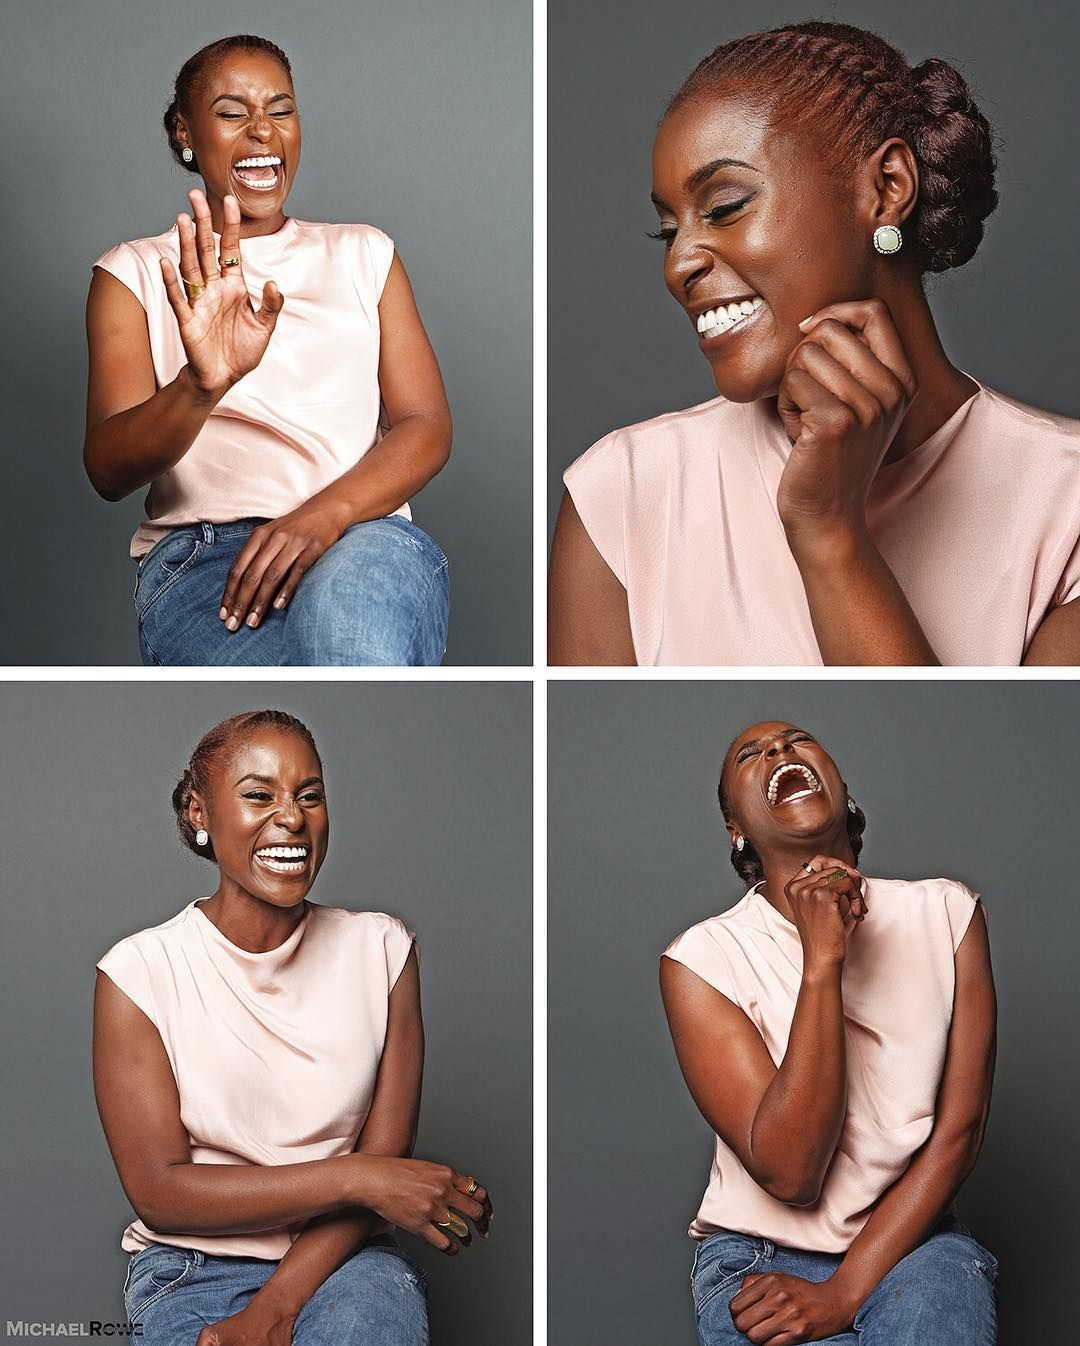 Tag share issa rae continues to show the versatility of natural tag share issa rae continues to show the versatility of natural hair on the show as well as in all her press rocking her twa proudly but not afraid to pmusecretfo Image collections